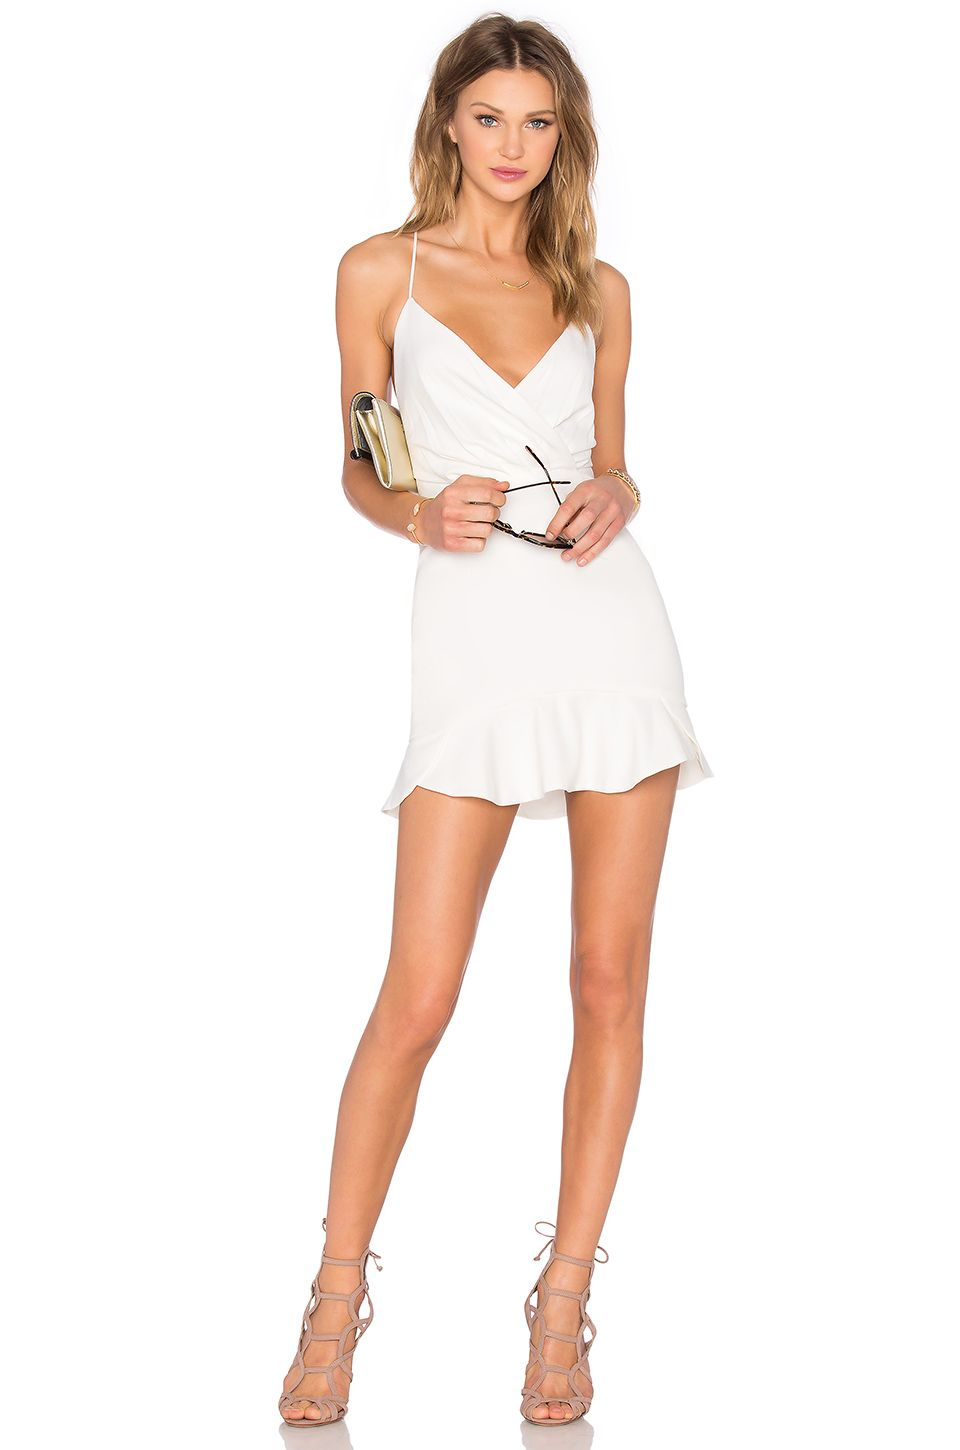 Nbd Marilyn Dress In Off White At Revolveclothing Revolve Clothing Vegas Dresses Marilyn Dress [ 1450 x 960 Pixel ]